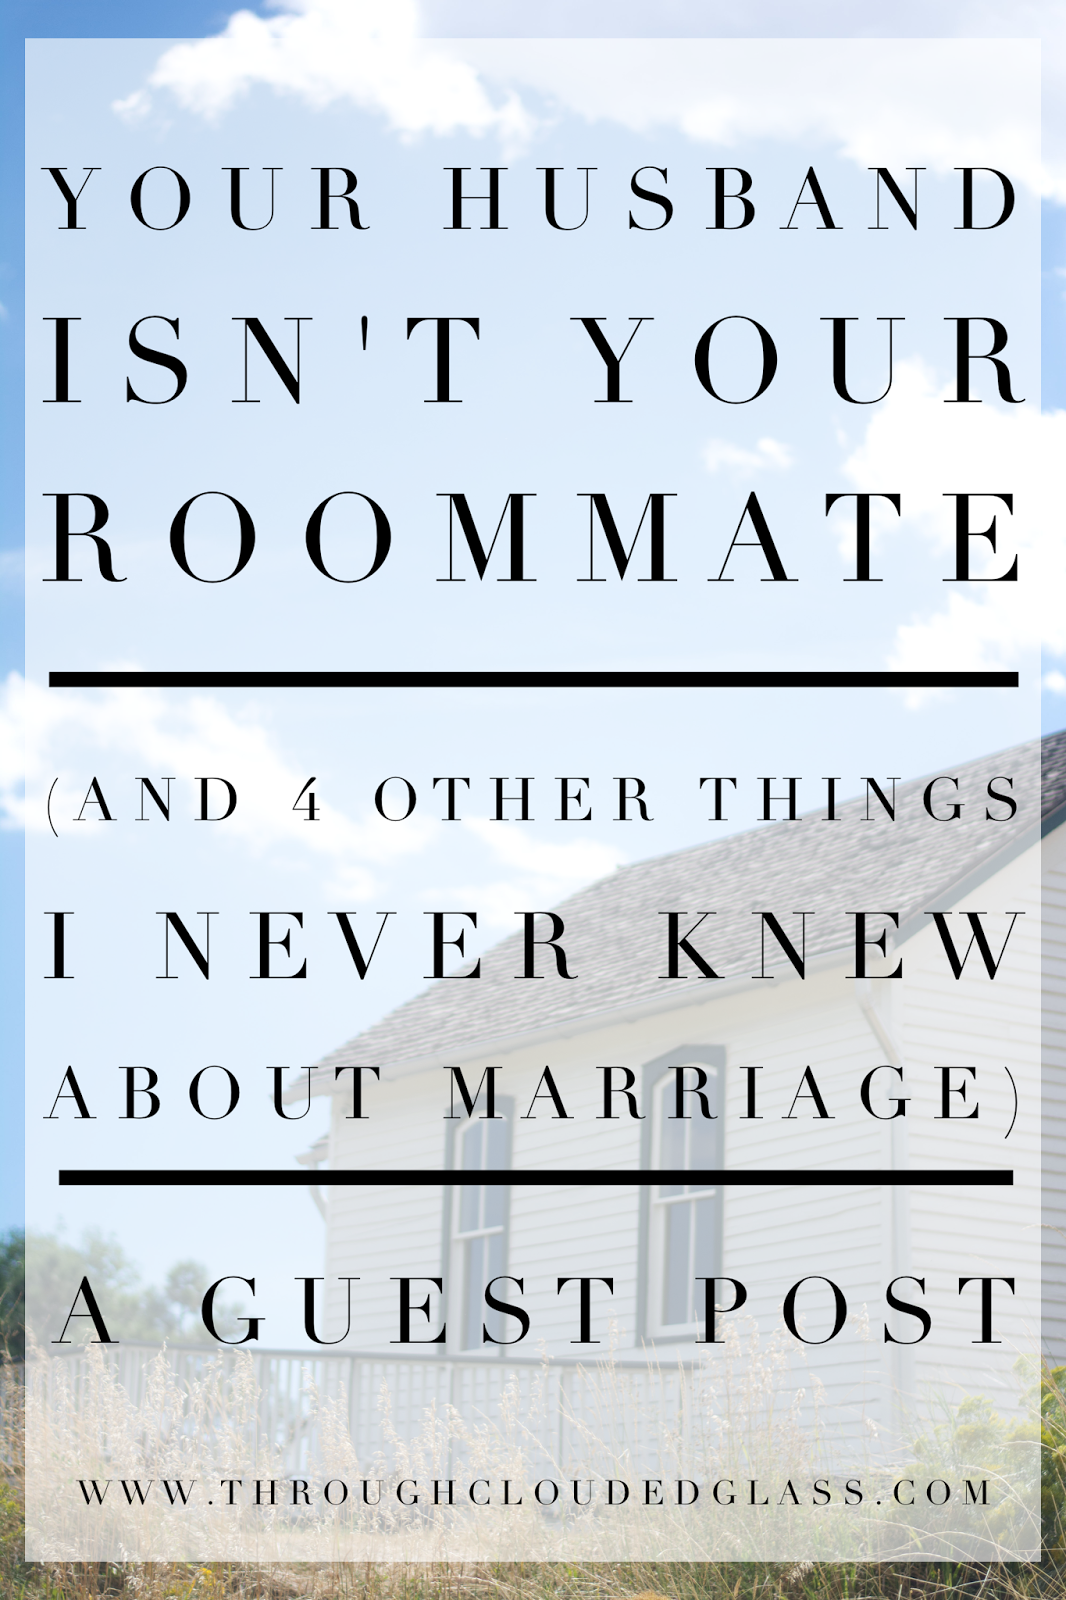 Your Husband Isn't Your College Roommate, And Four Other Things I Never Knew About Marriage | Through Clouded Glass